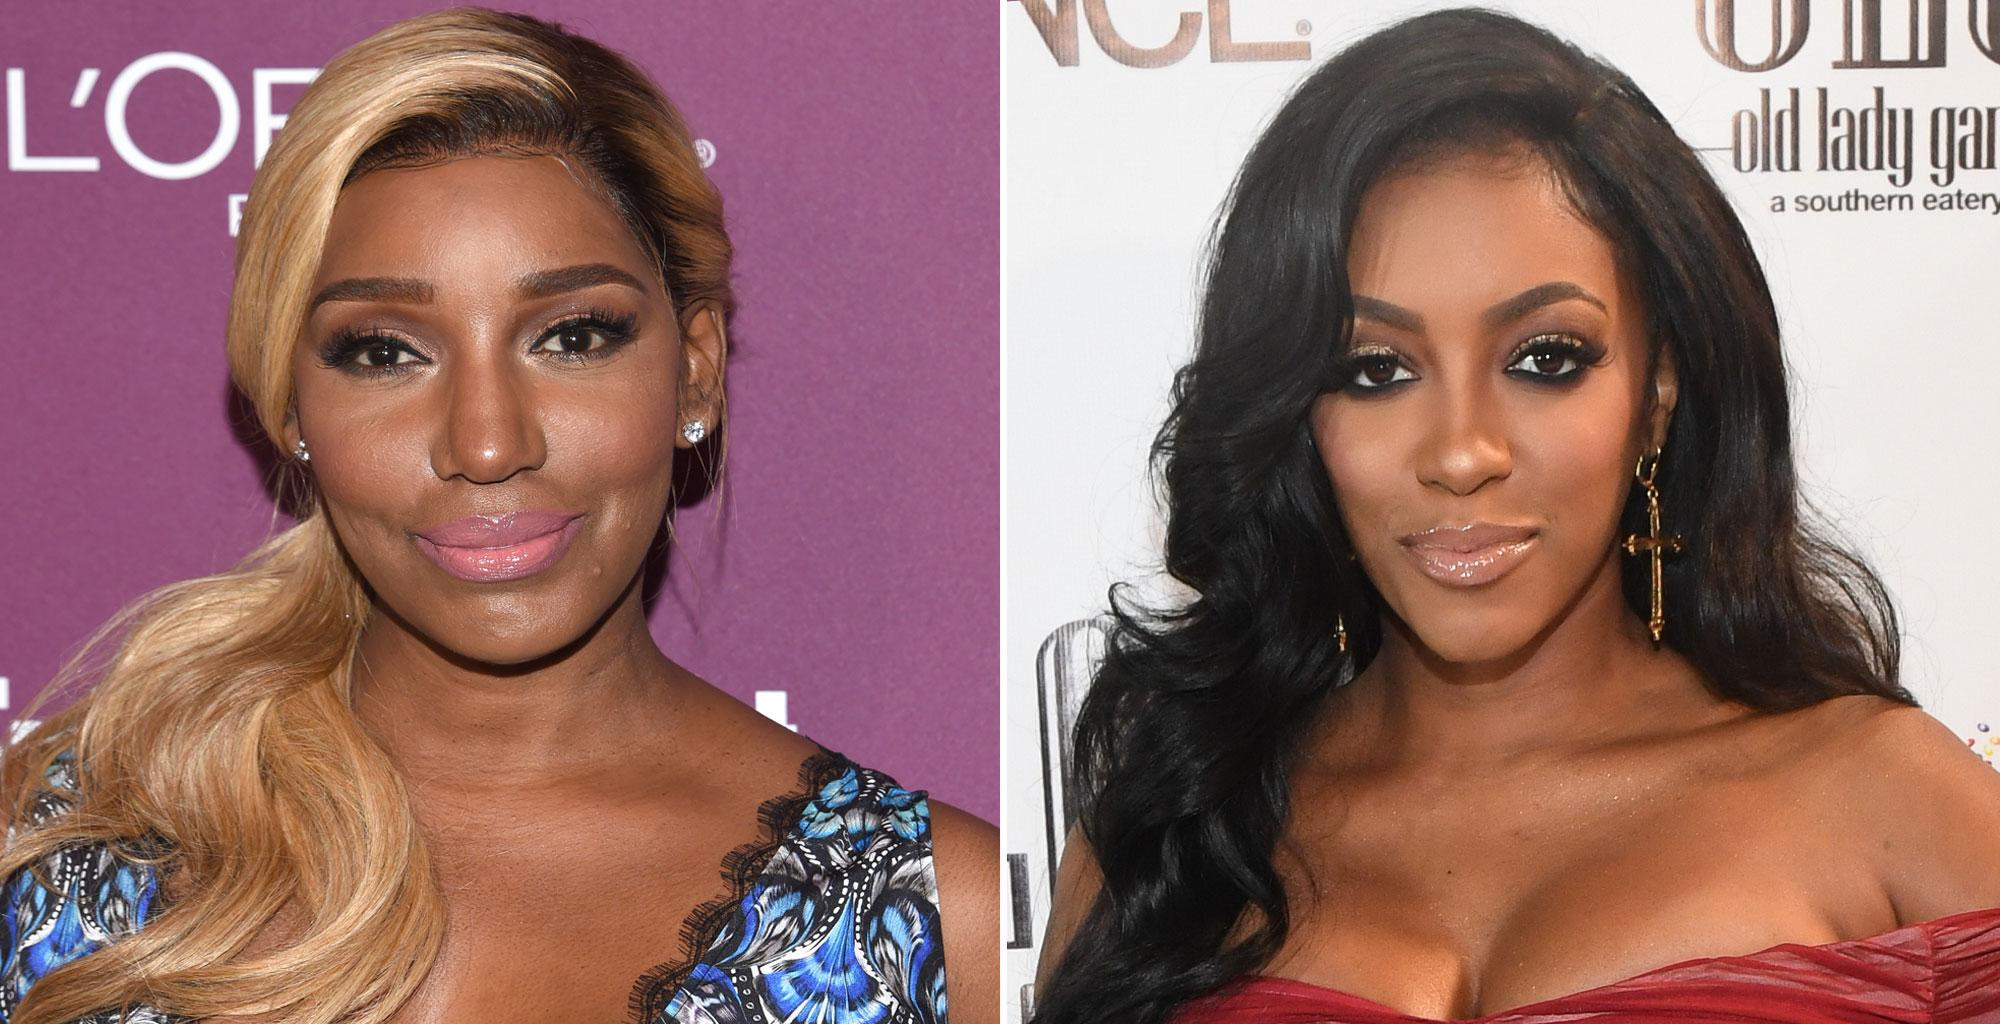 Porsha Williams And NeNe Leakes Will Act Professional And Film Together Despite Their Drama